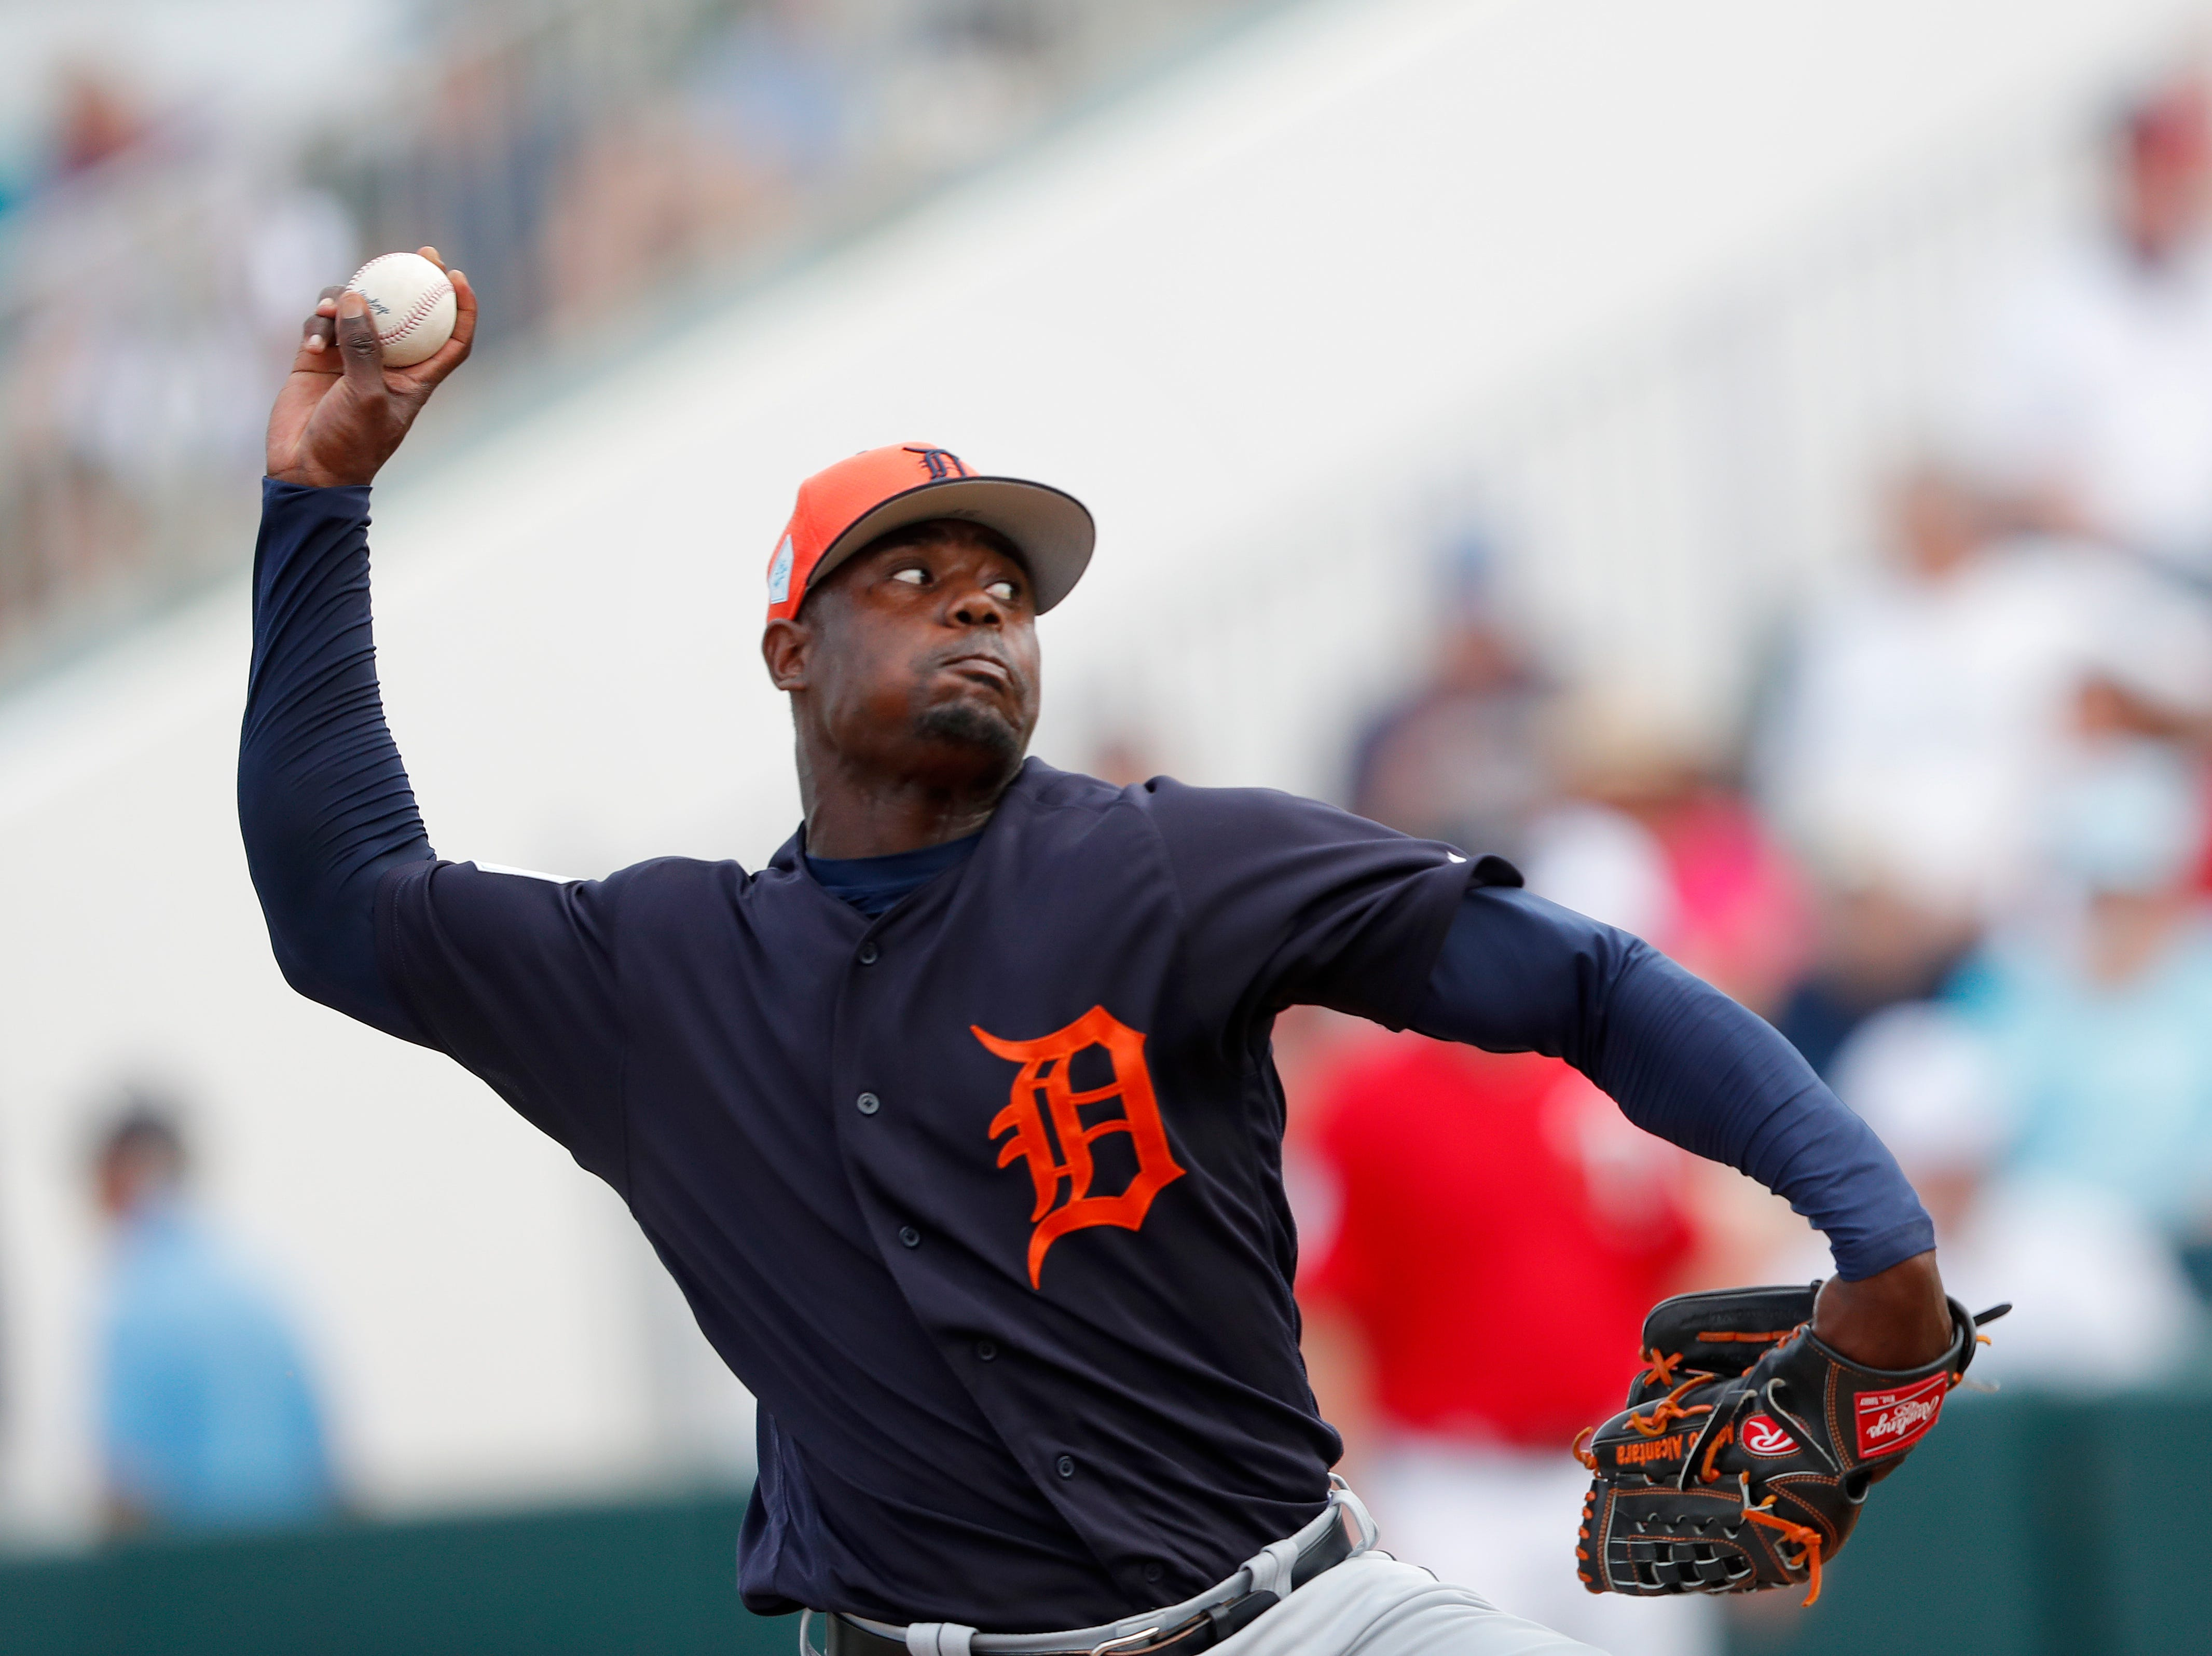 Detroit Tigers relief pitcher Victor Alcantara (58) works against the Minnesota Twins during a spring training baseball game Monday, March 11, 2019, in Fort Myers, Fla.